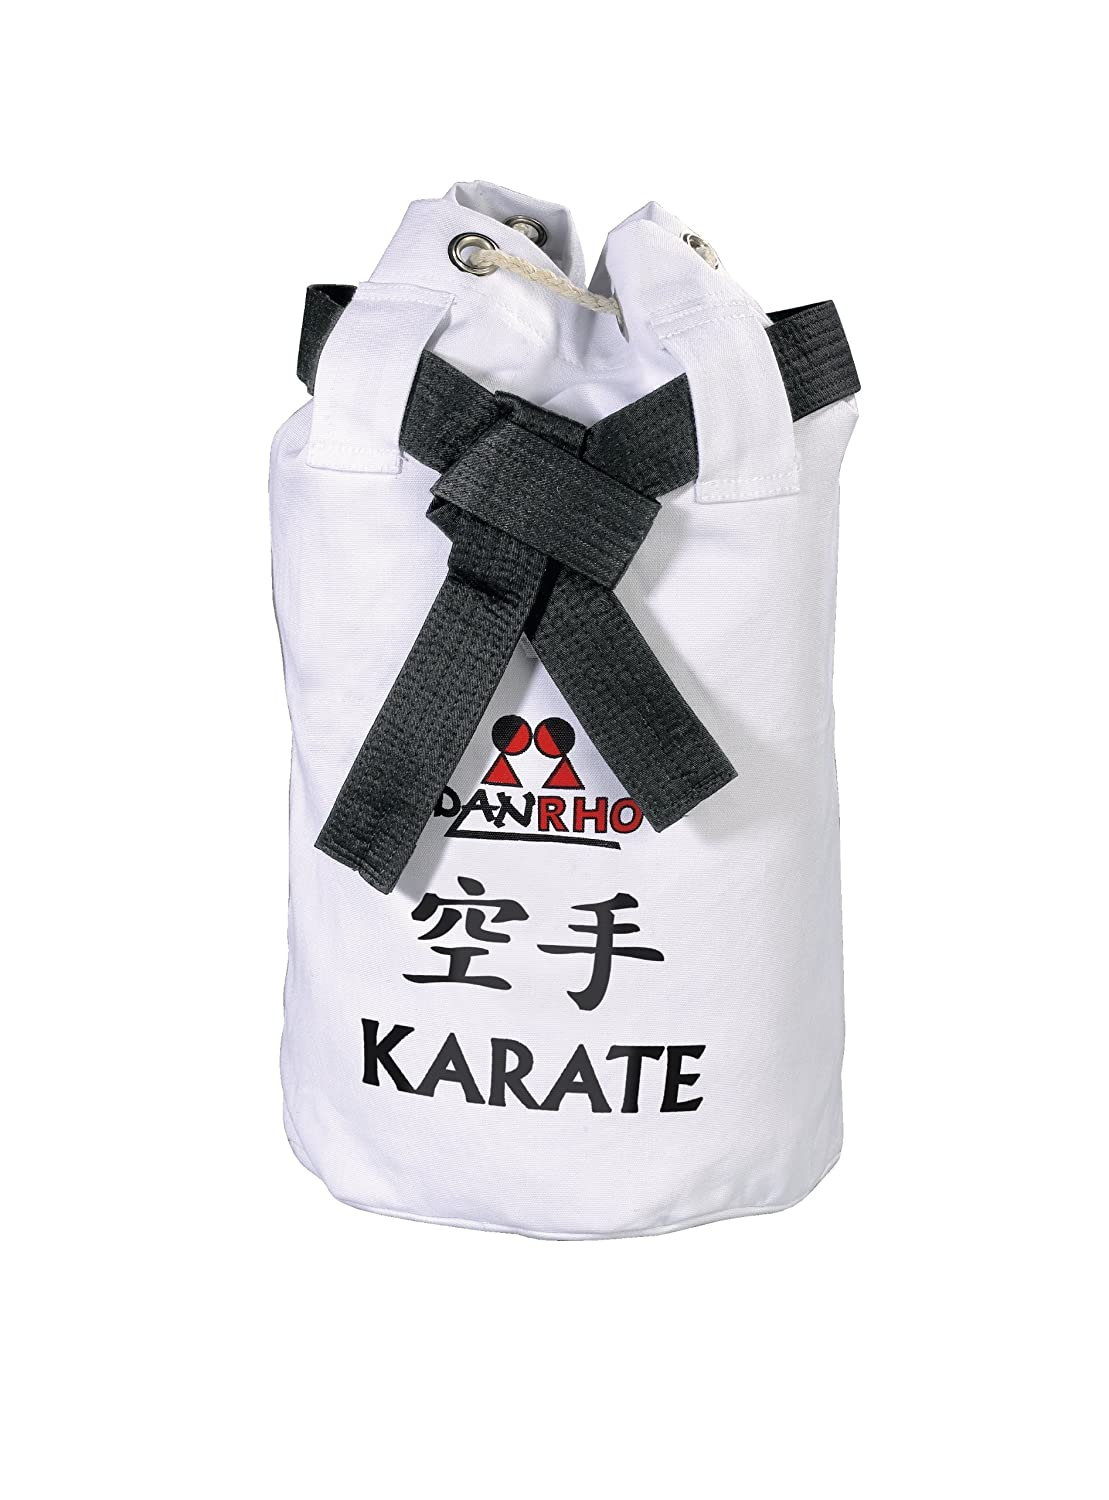 DanRho 226018020 Dojo Line Children's Karate Canvas Bag - White